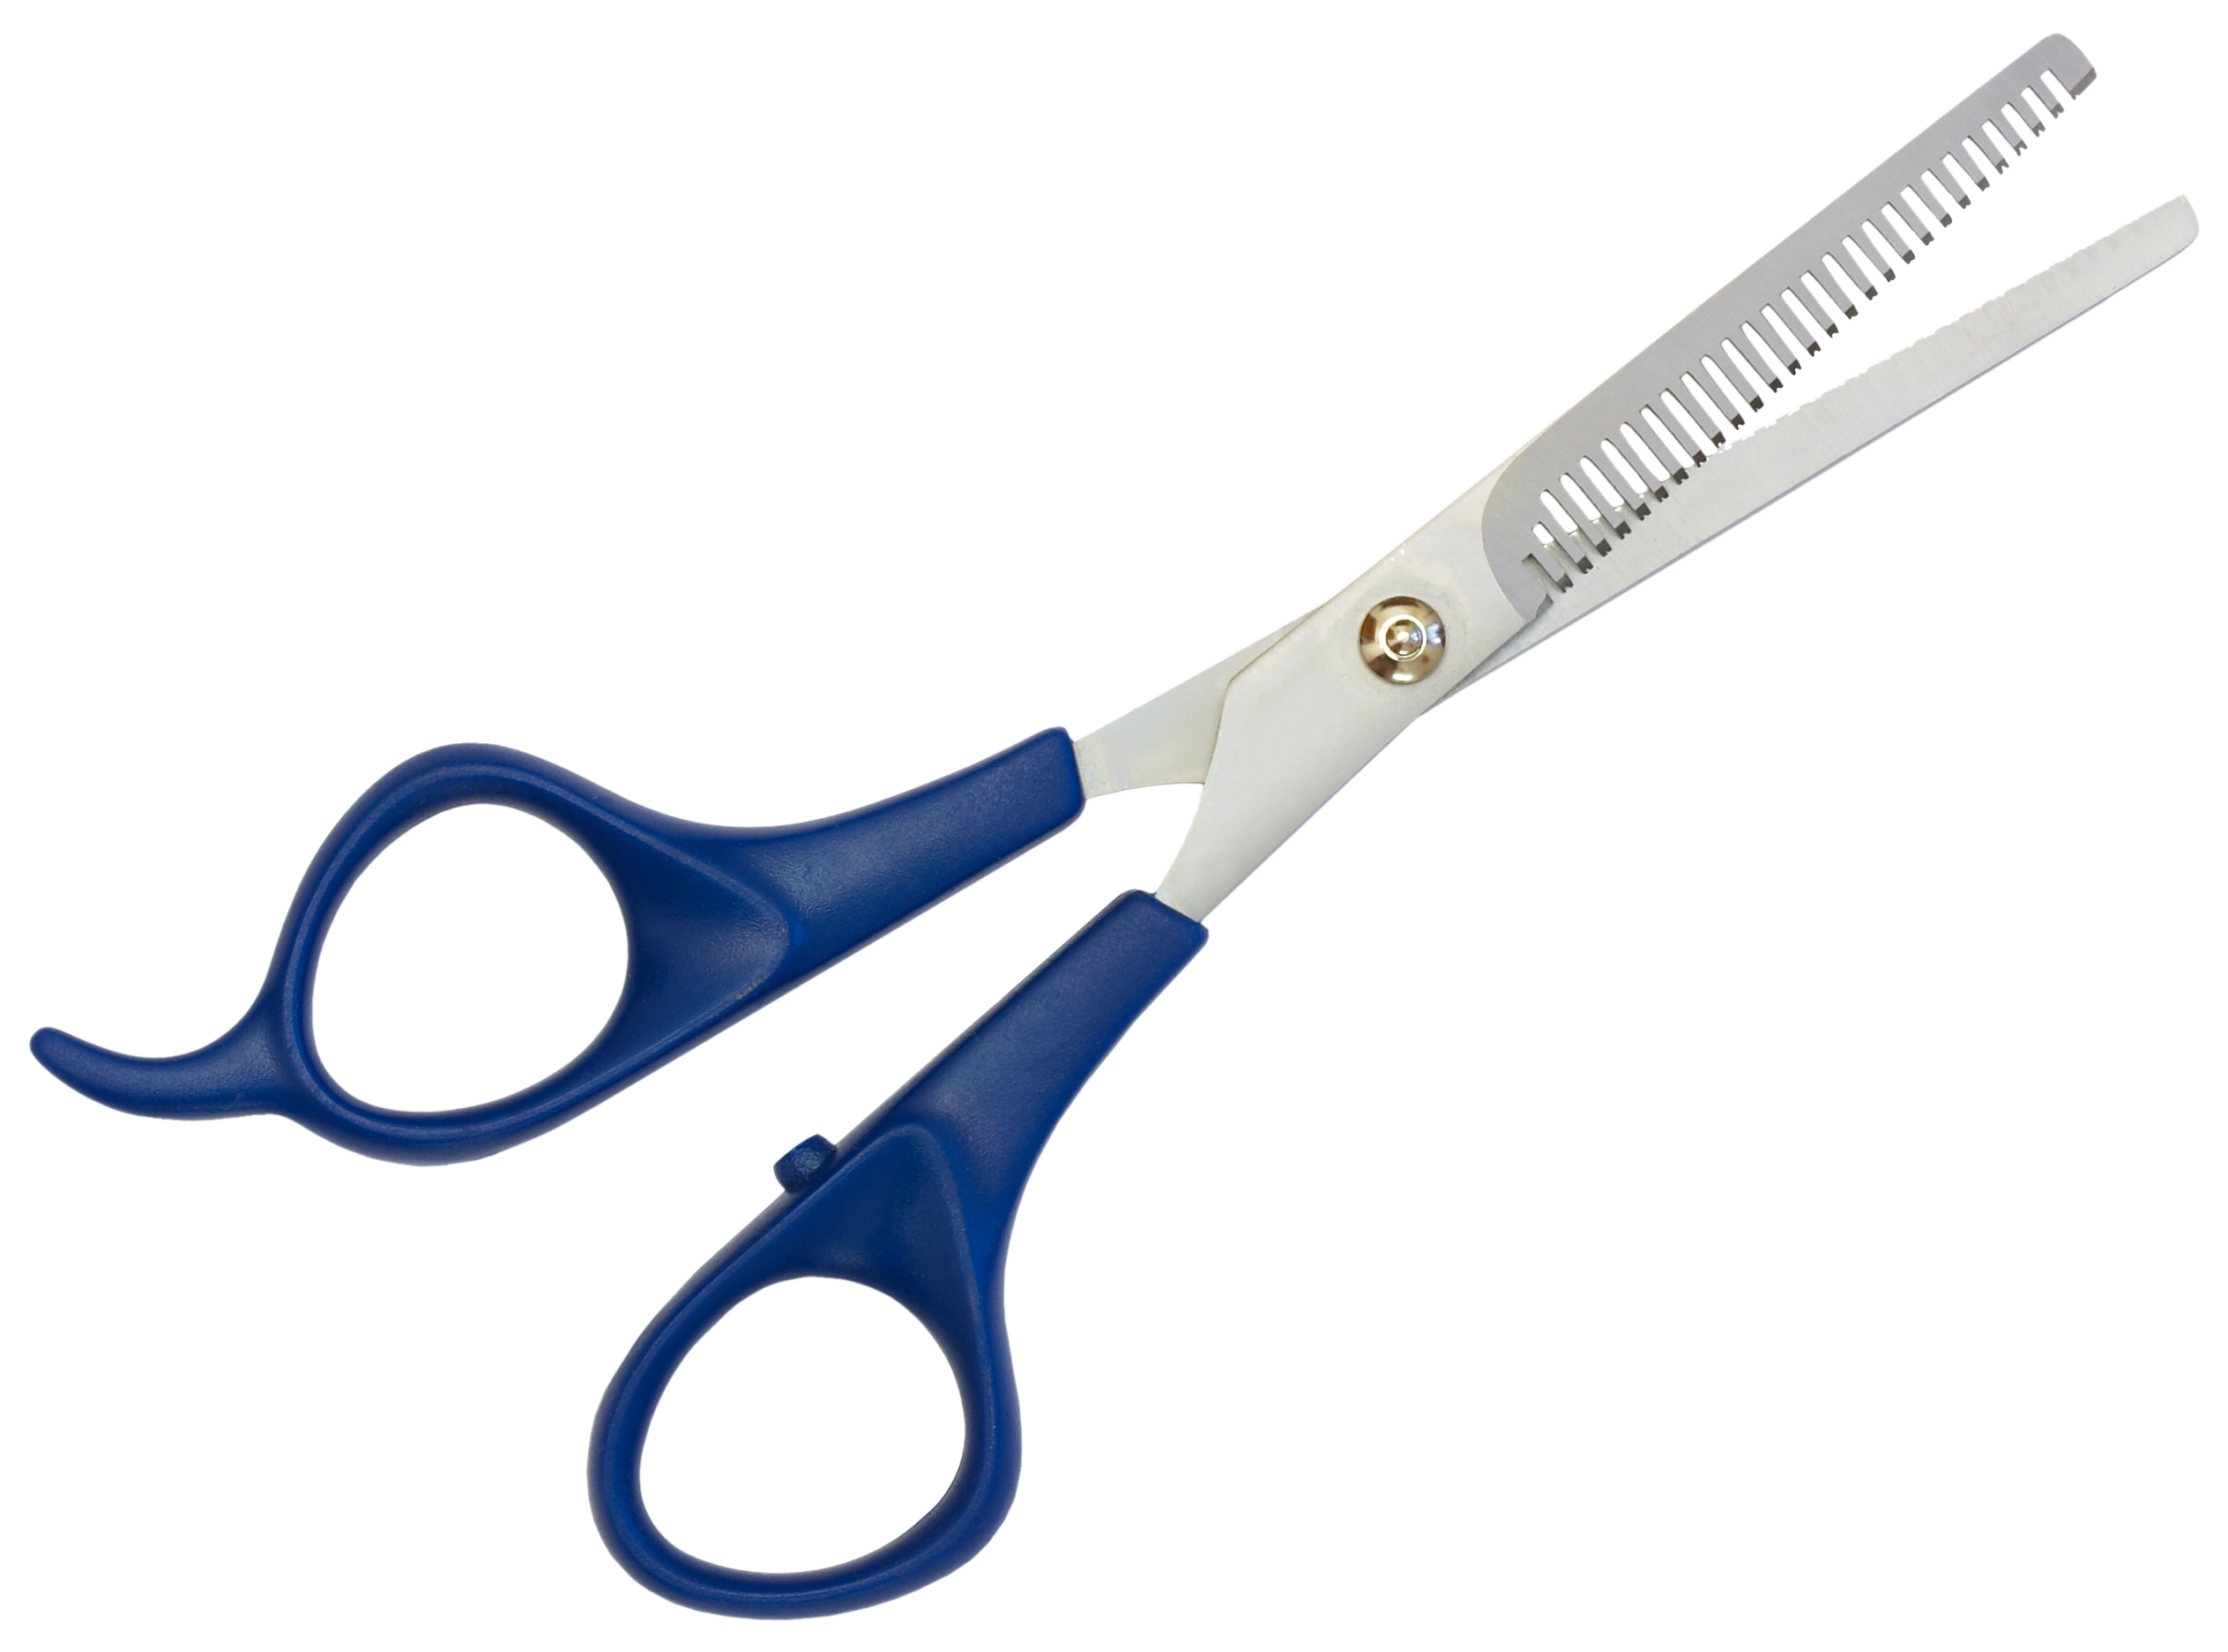 hair cutting scissors shears aerona beauty Aerona beauty is a manufacturing & export company selling beauty care instruments-manicure implements like hair cutting scissors,barber shears,cuticle nippers,hair thinning shears,professional nail nippers,young nails magic wand,cuticle nail scissors,heavy duty toenail cutters,nail nippers,arrow point nail nippers,nail clippers,cuticle pushers.